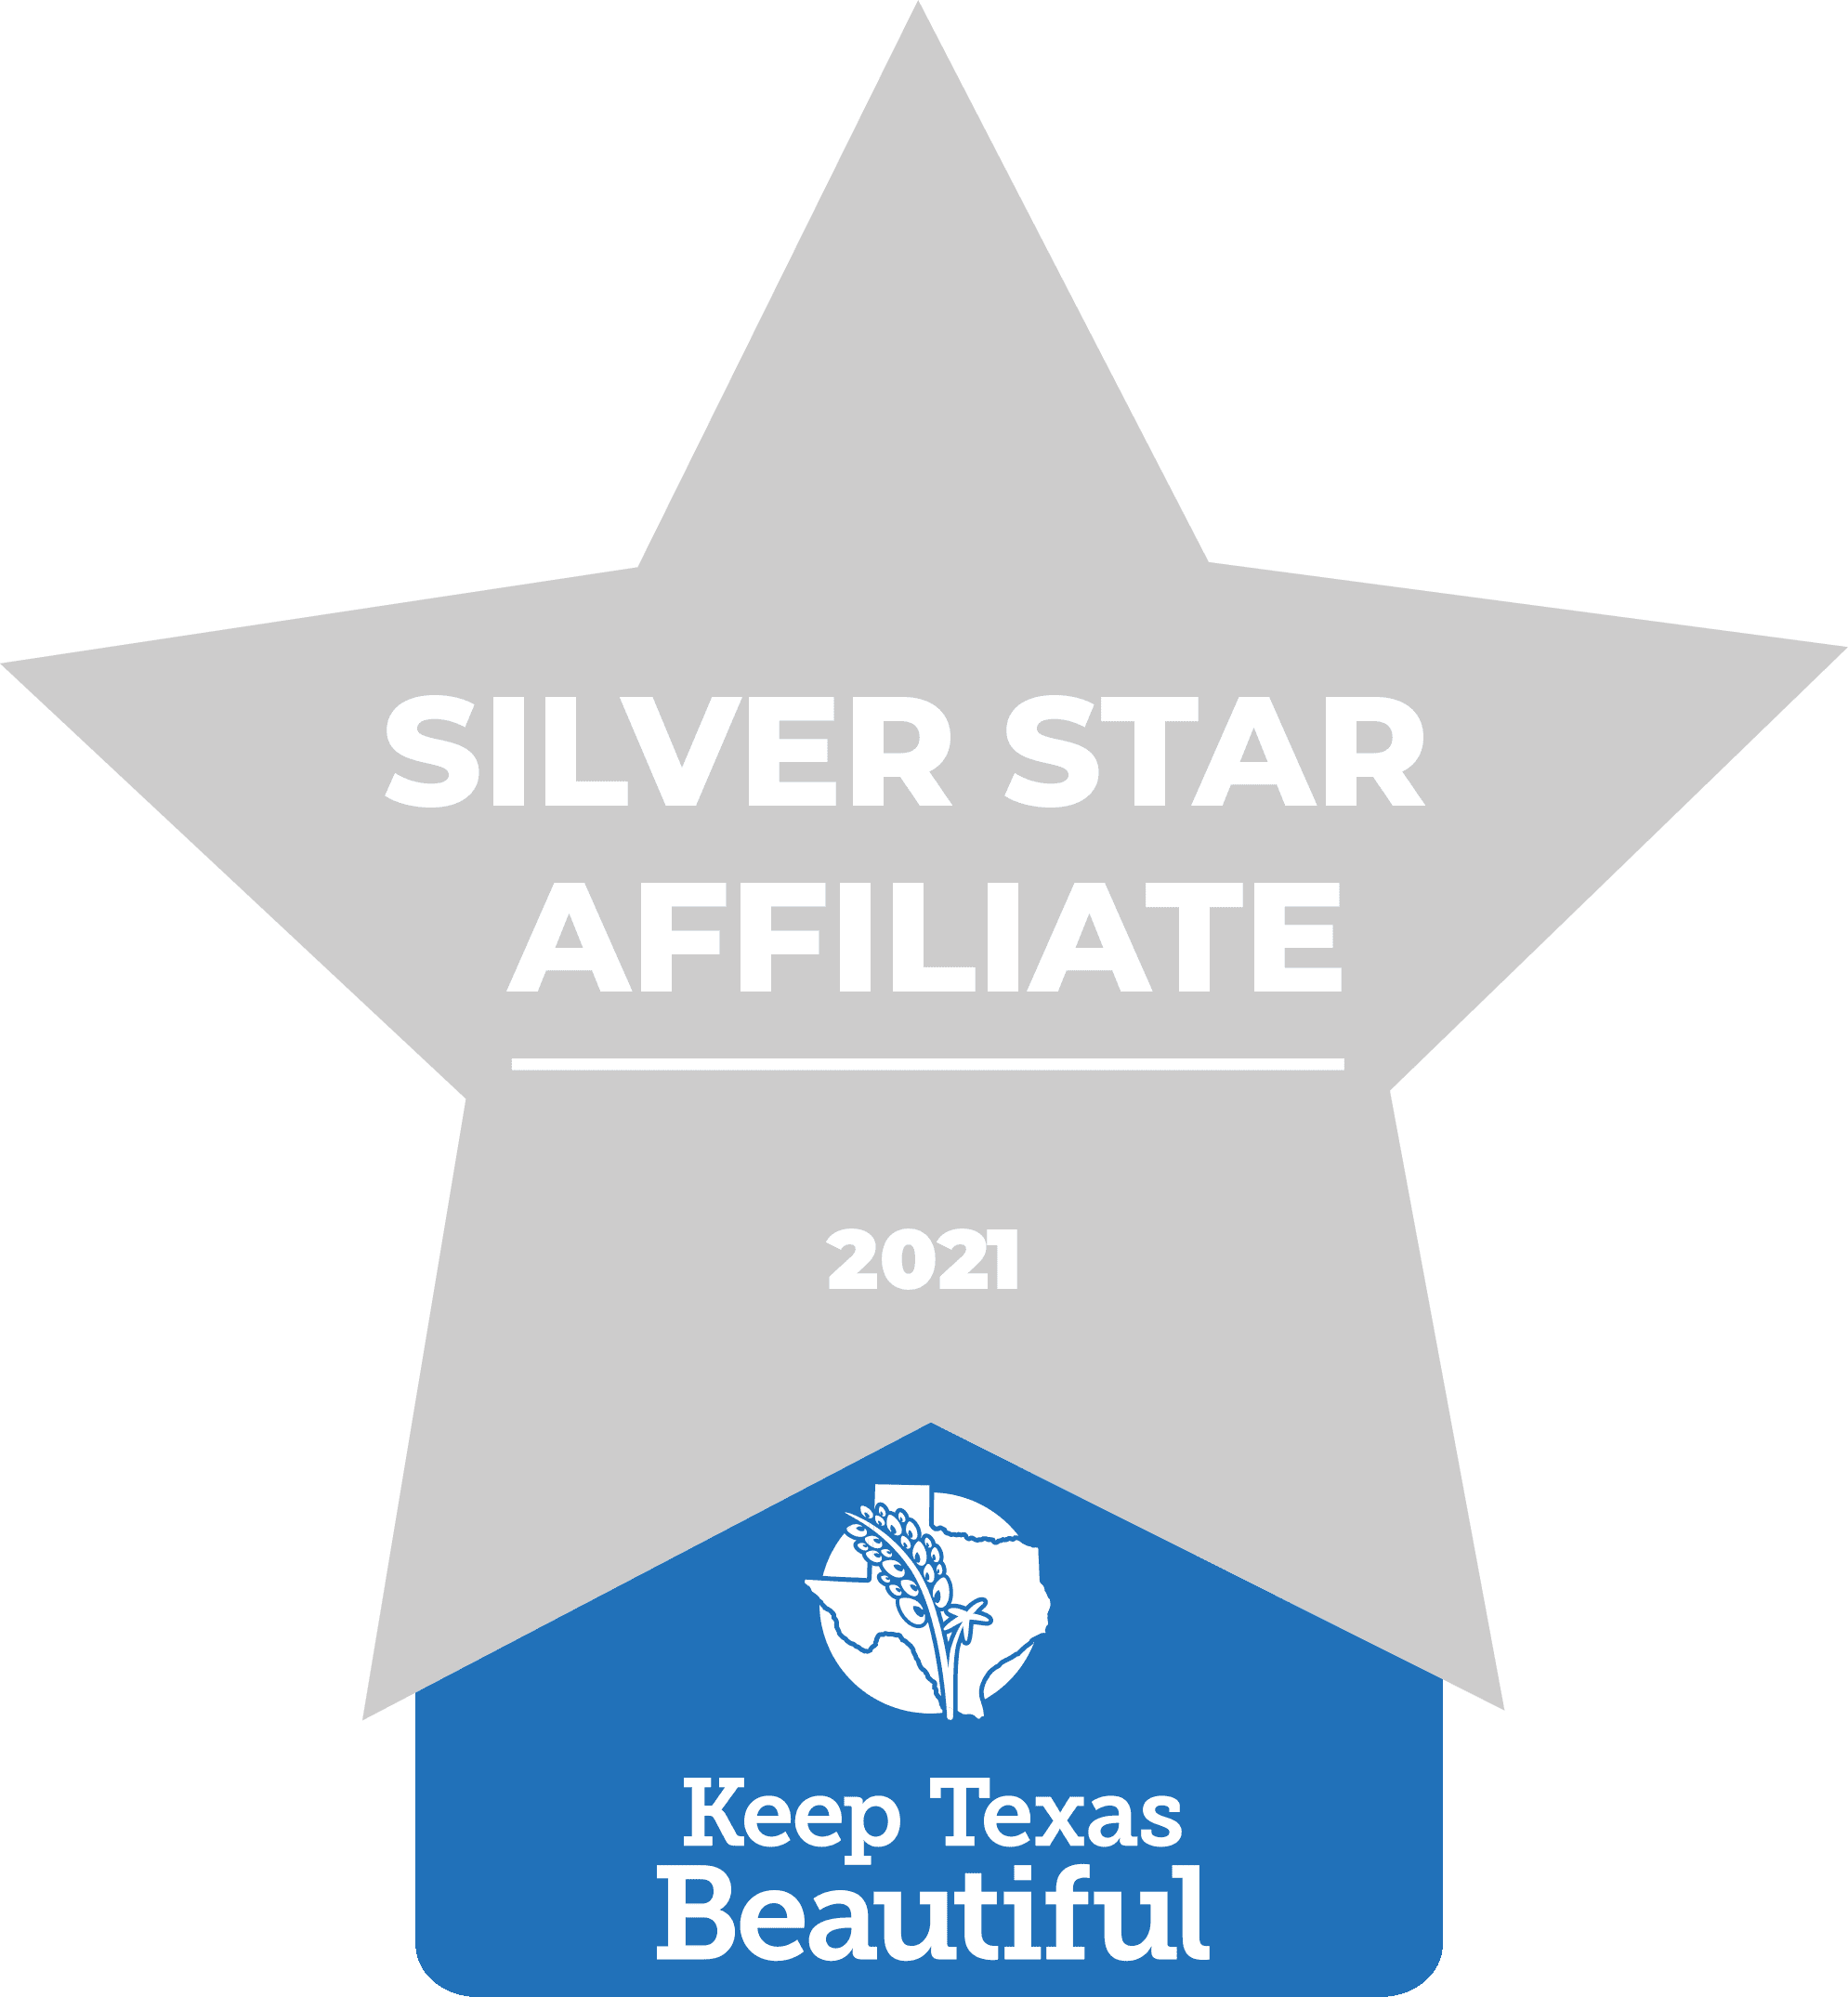 Silver Star Affiliate KTB logo